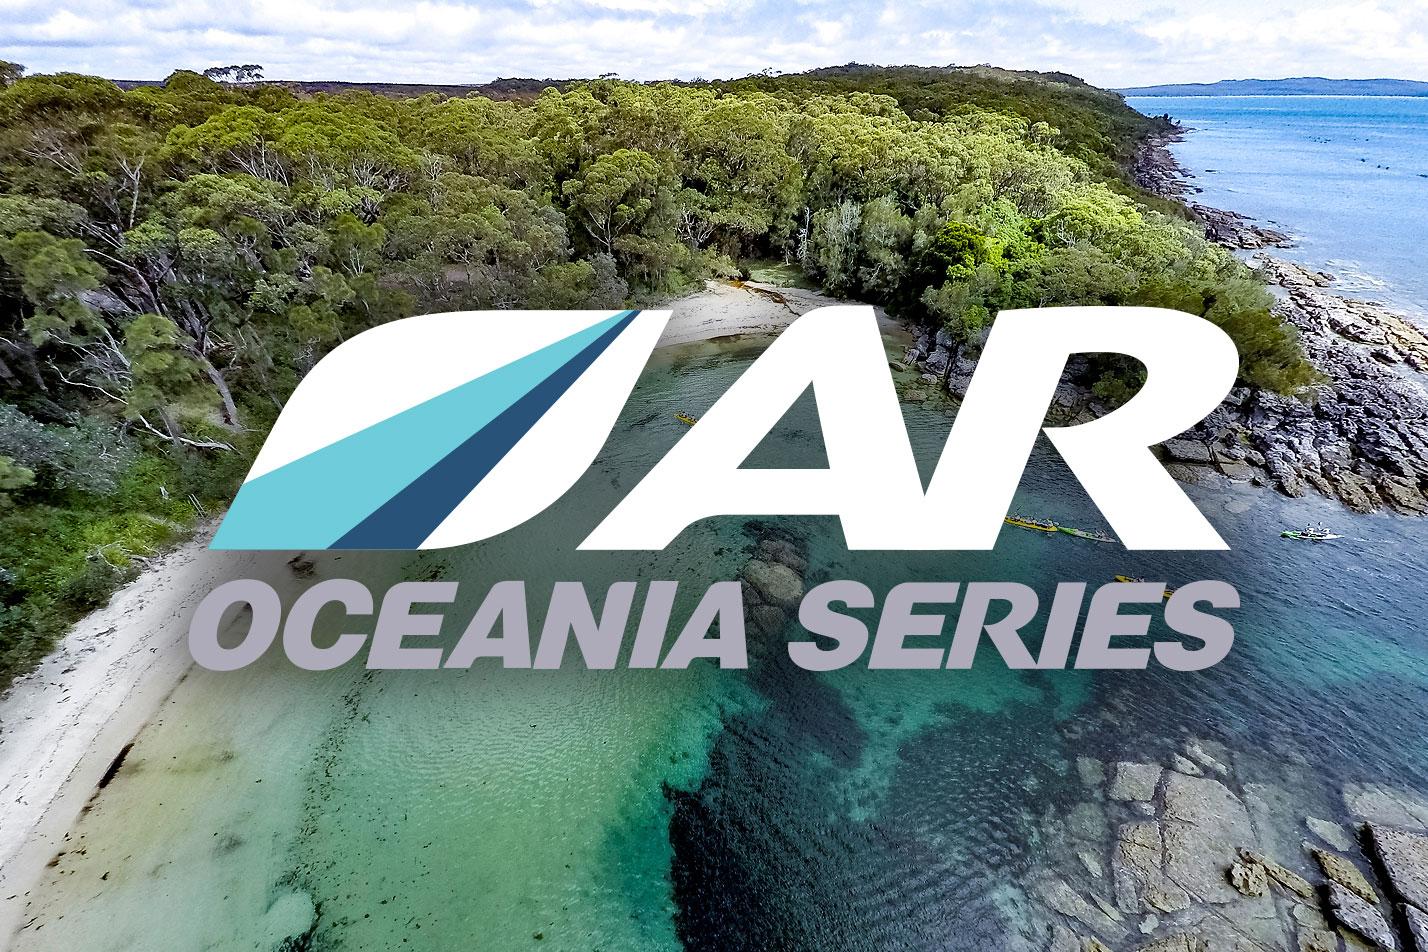 SERIES QUALIFIER - Hells Bells is a qualifier race for the ARWS Oceania Series.